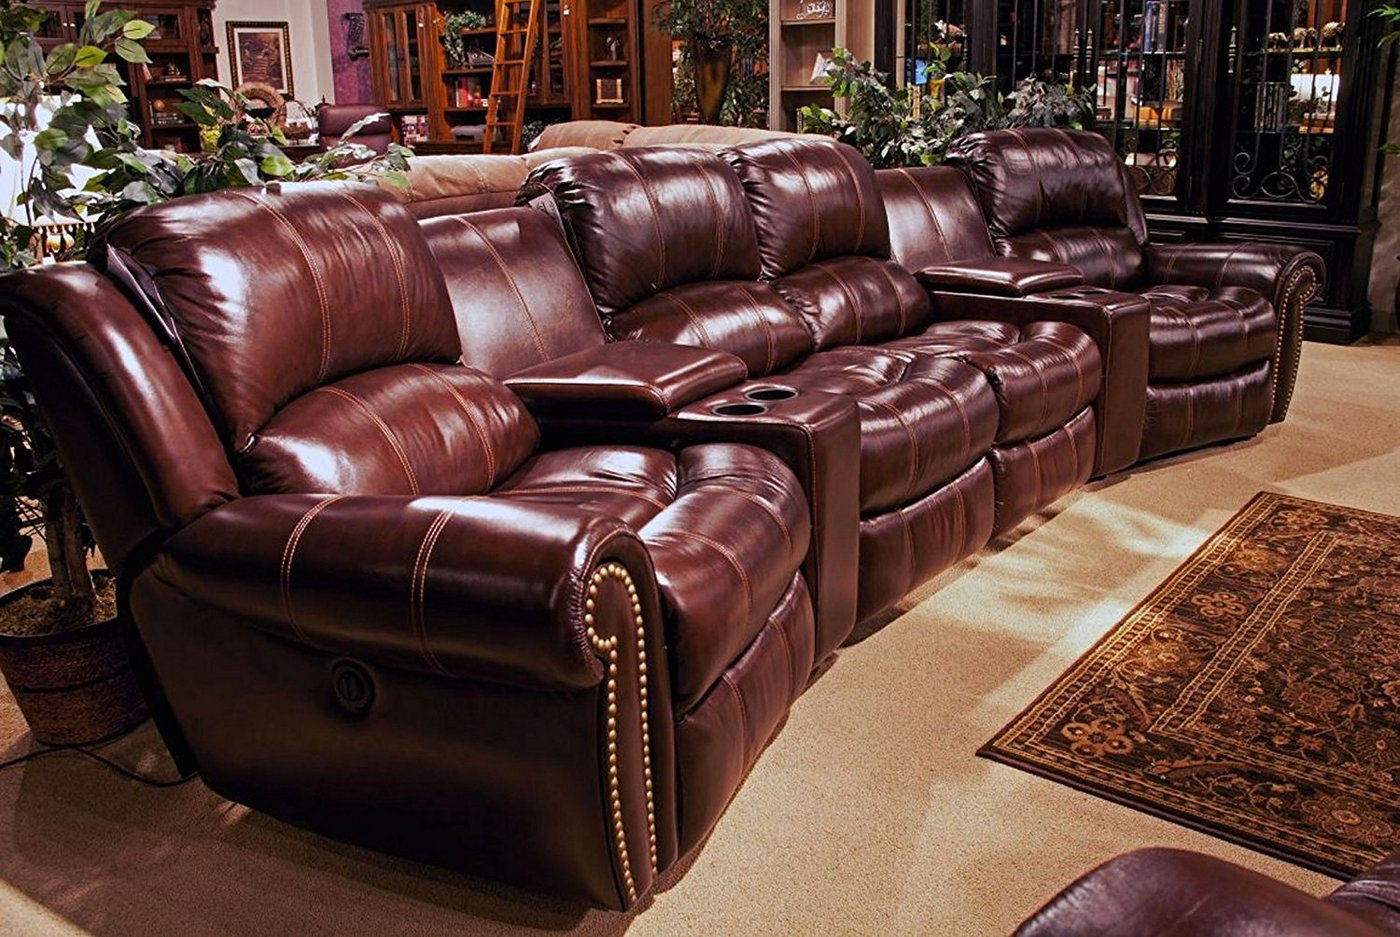 parker living poseidon cocoa brown leather theater style reclining sectional mpos packa co. Black Bedroom Furniture Sets. Home Design Ideas